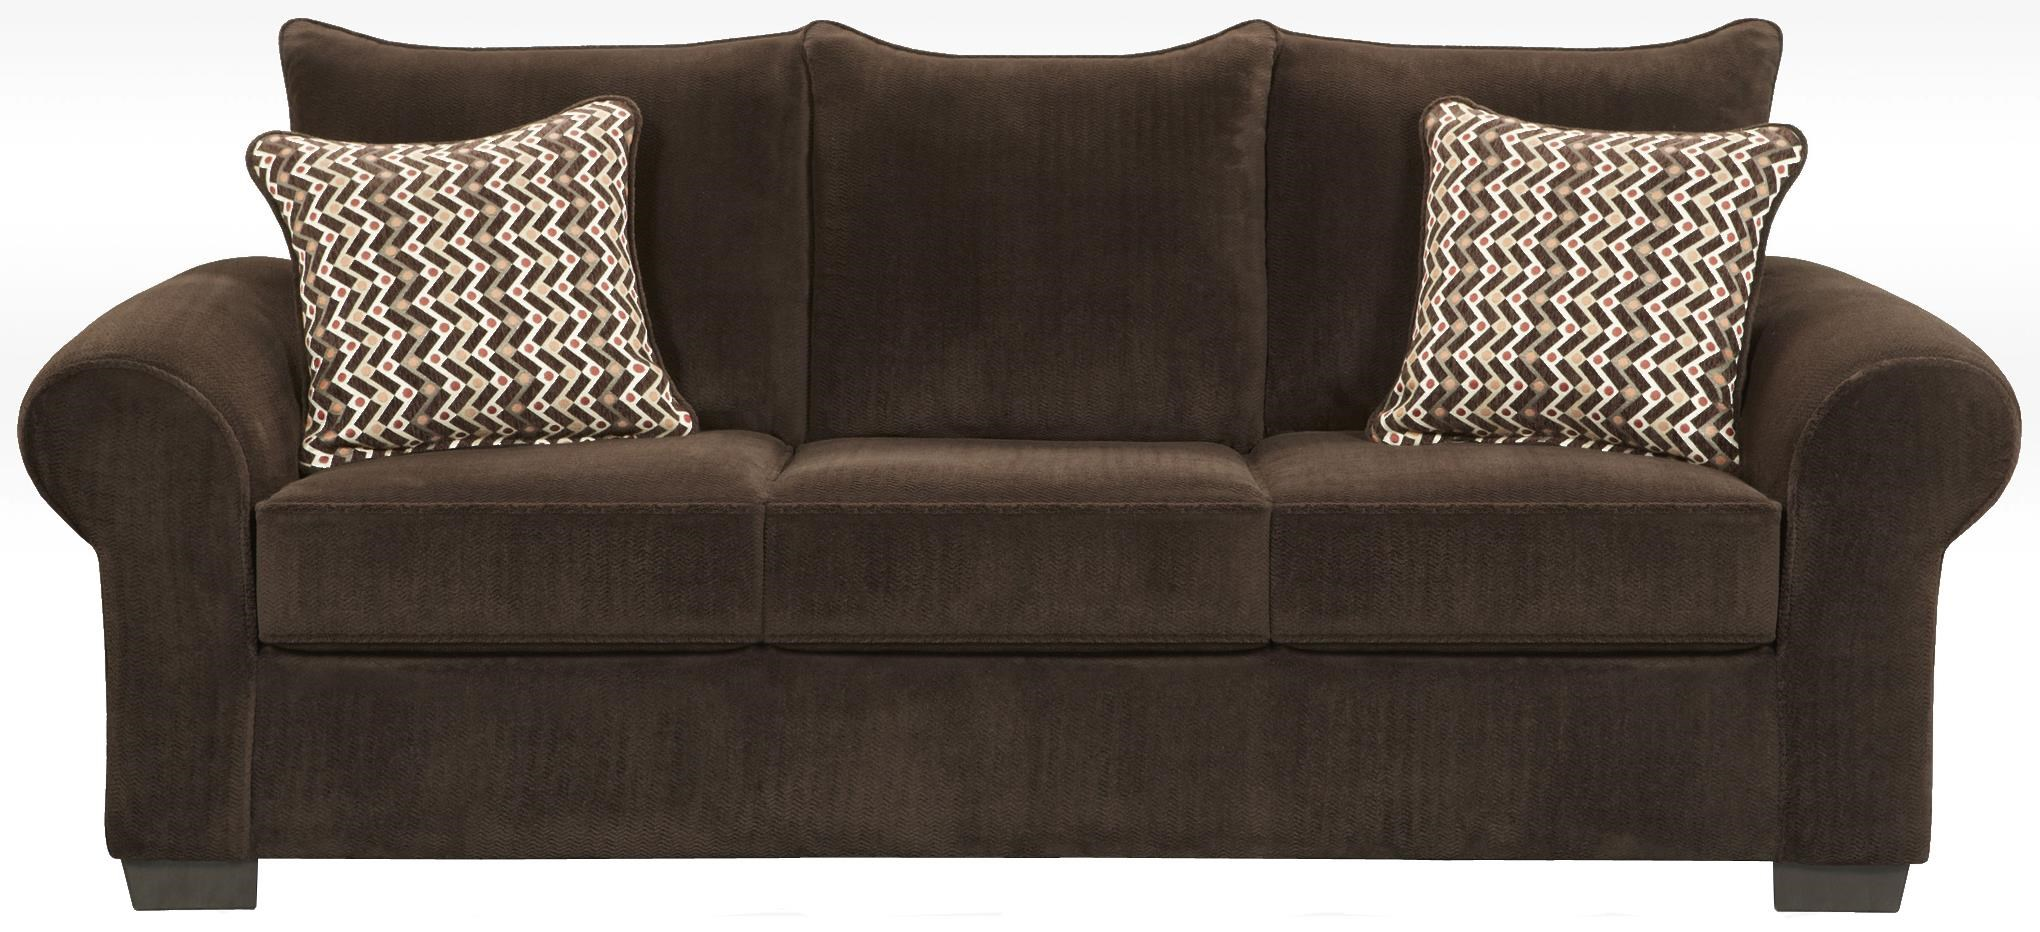 Affordable Furniture 7300 Contemporary Sofa with